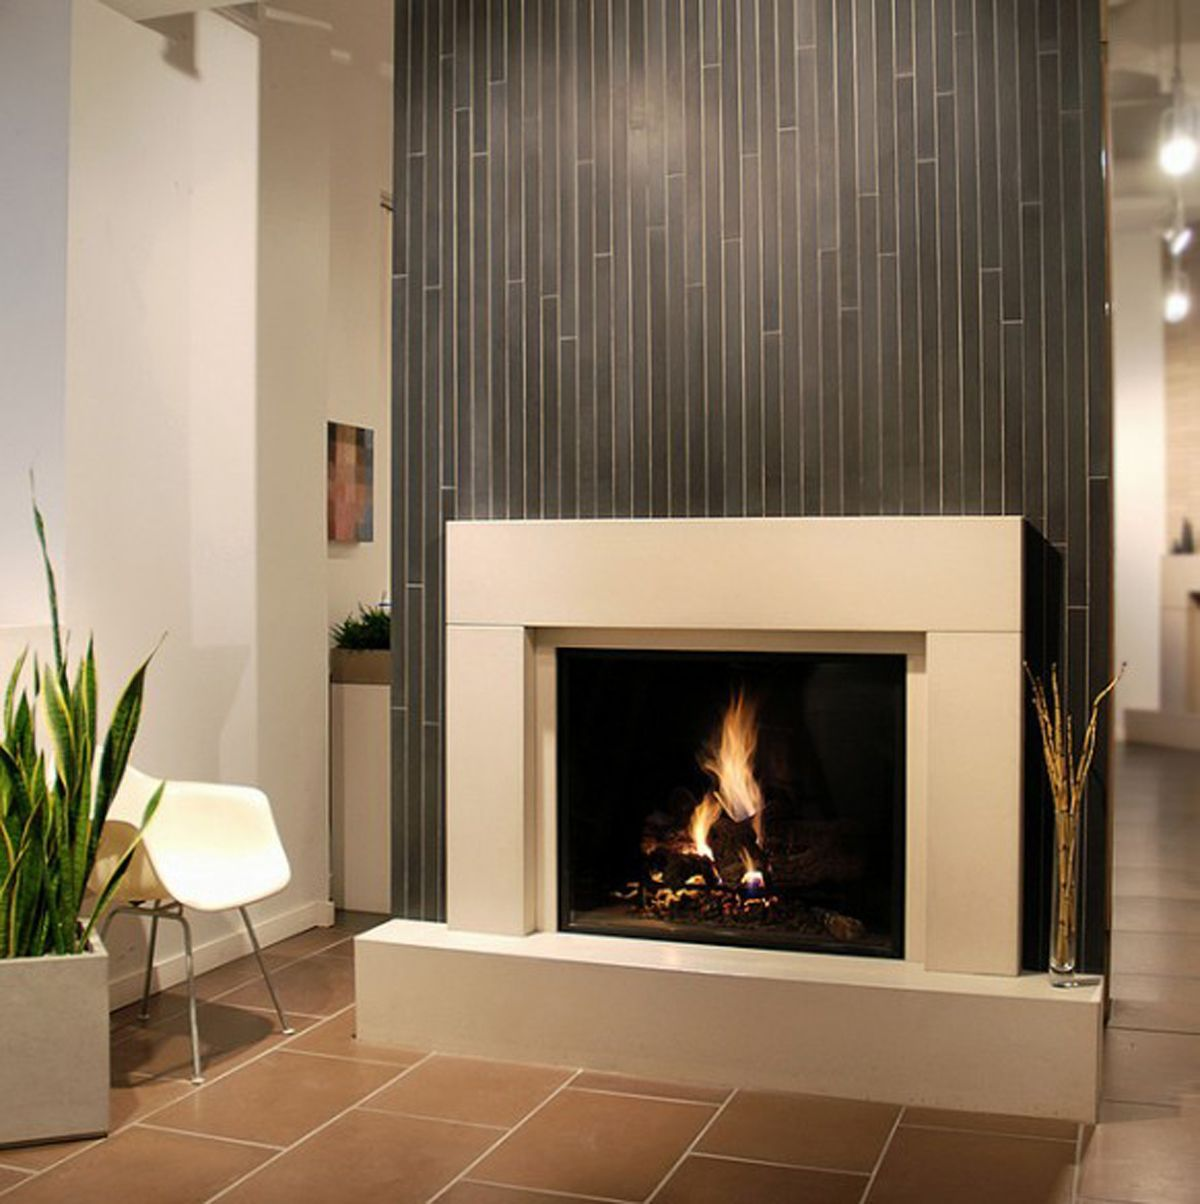 25 Stunning Fireplace Ideas to Steal Modern fireplaces Tiled